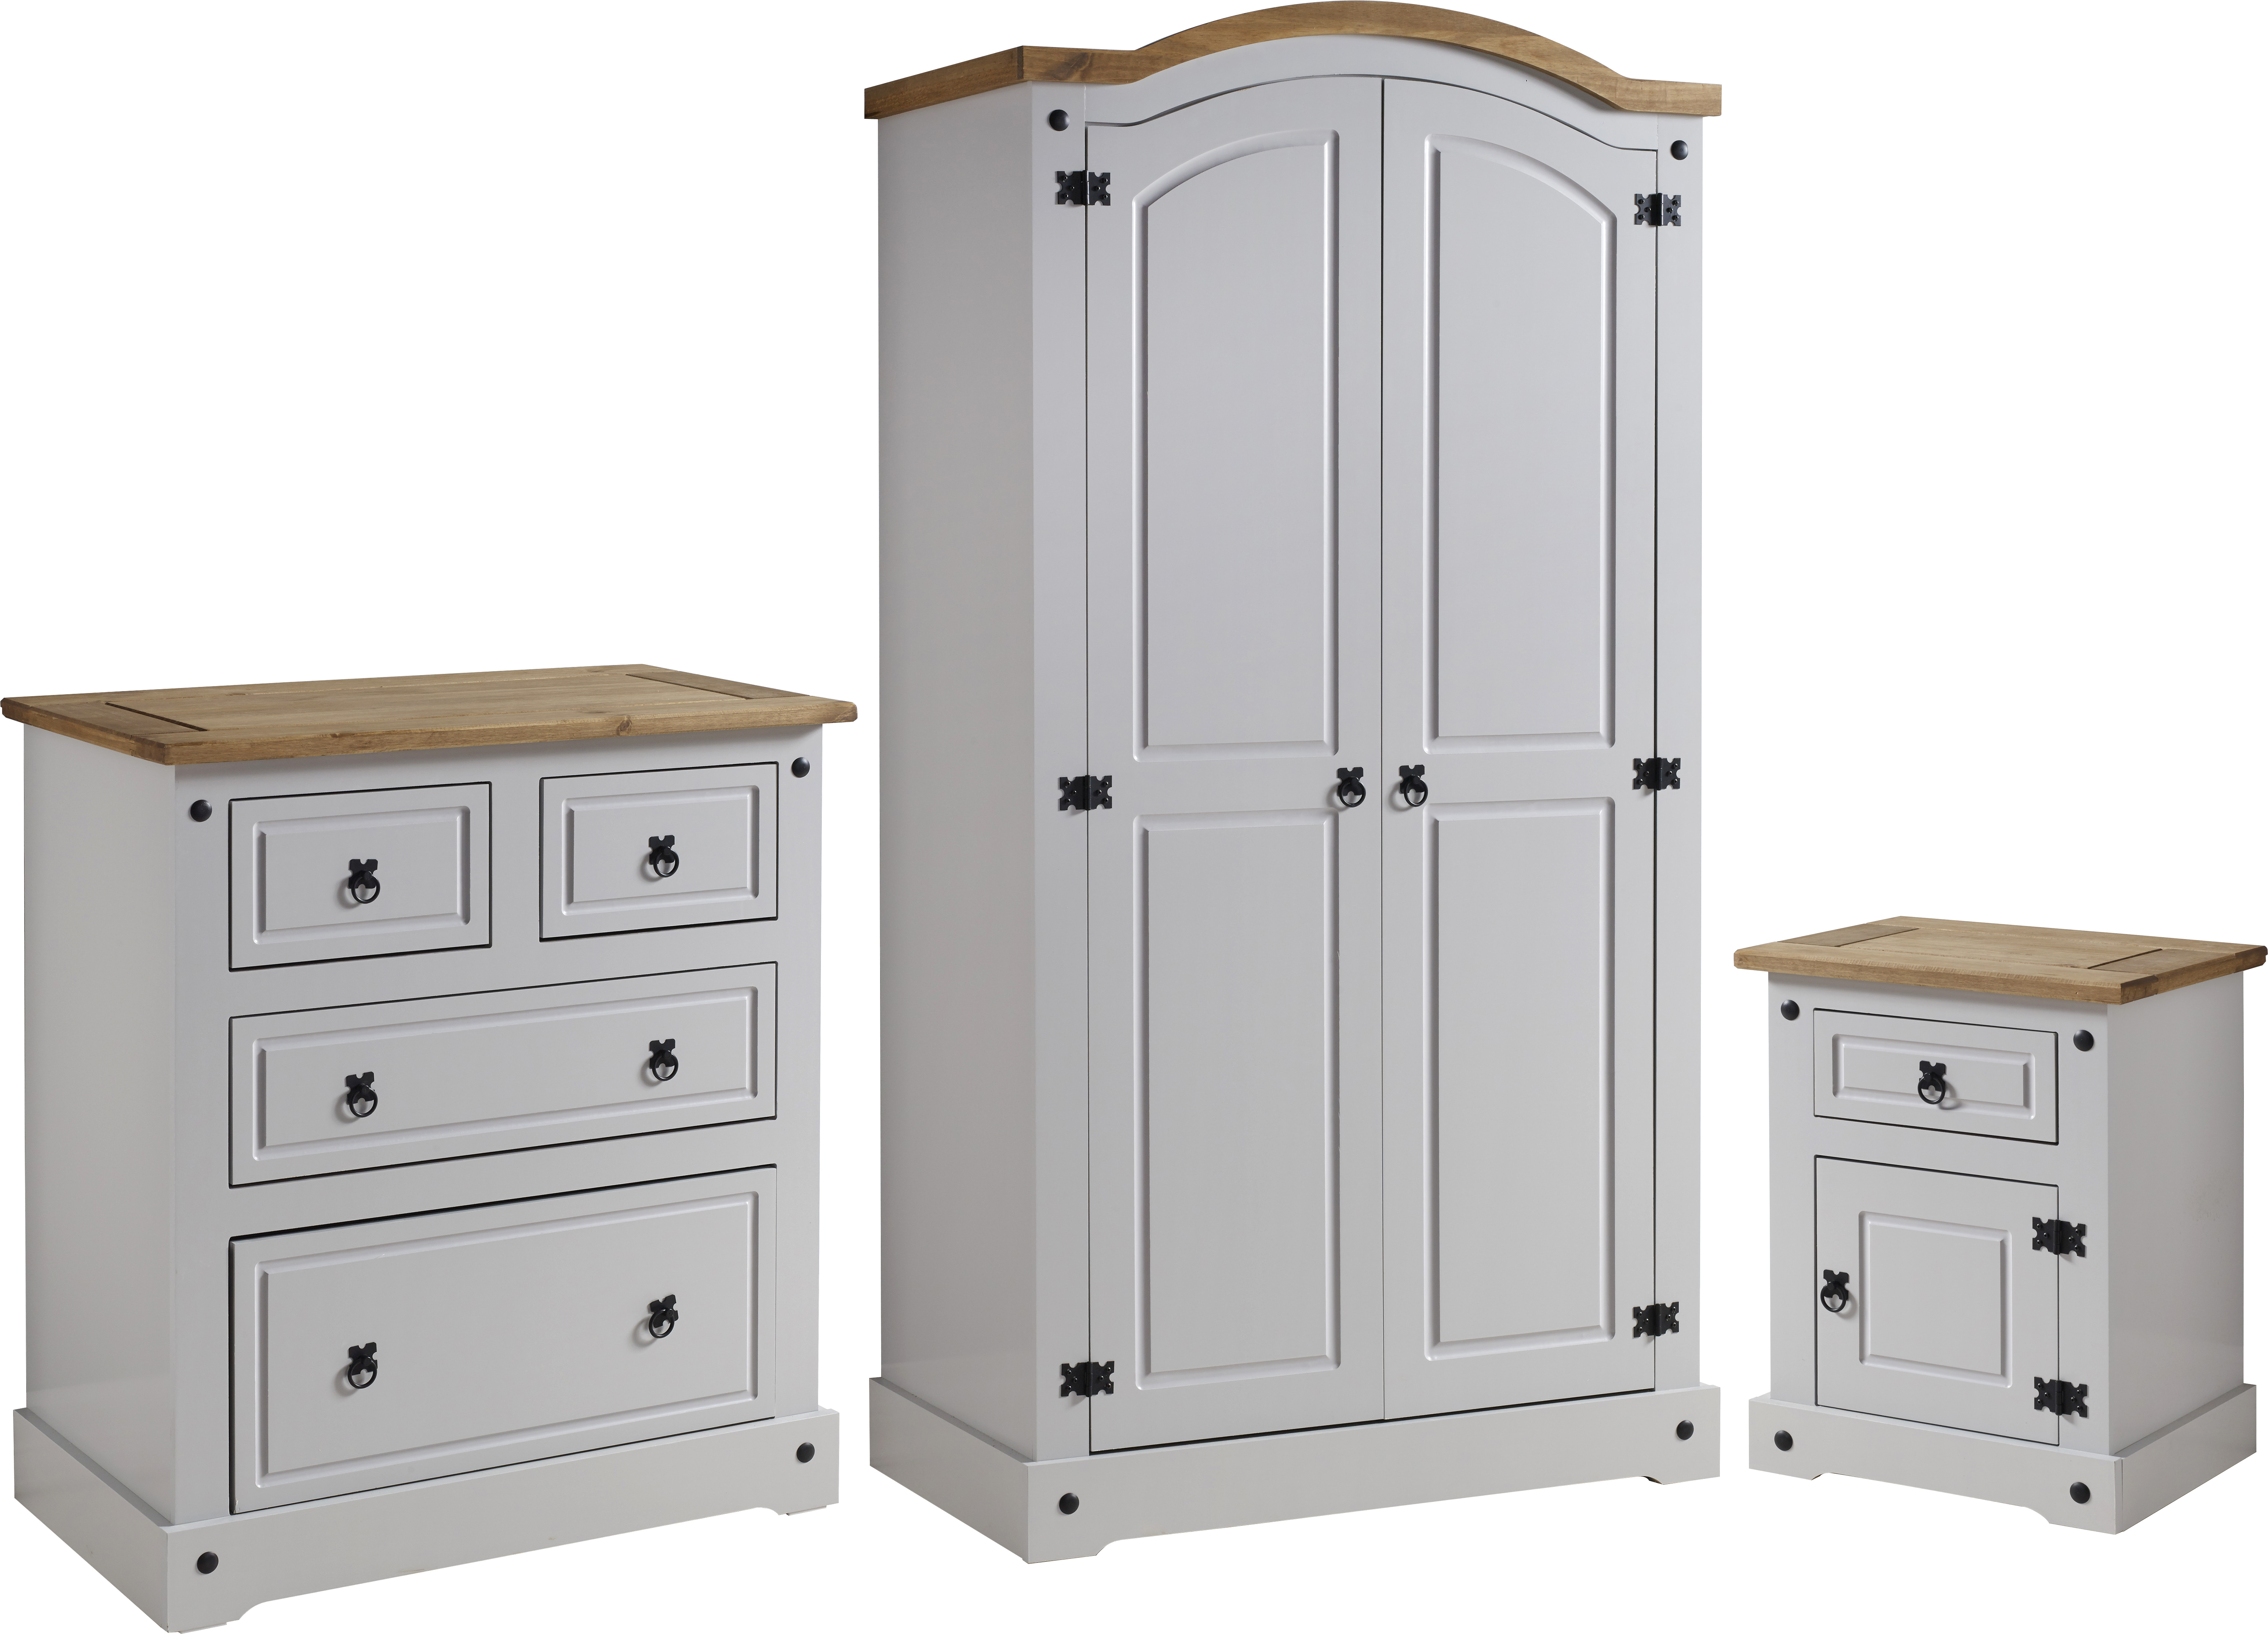 oak furniture triple solutions wardrobe tuscany grey soft